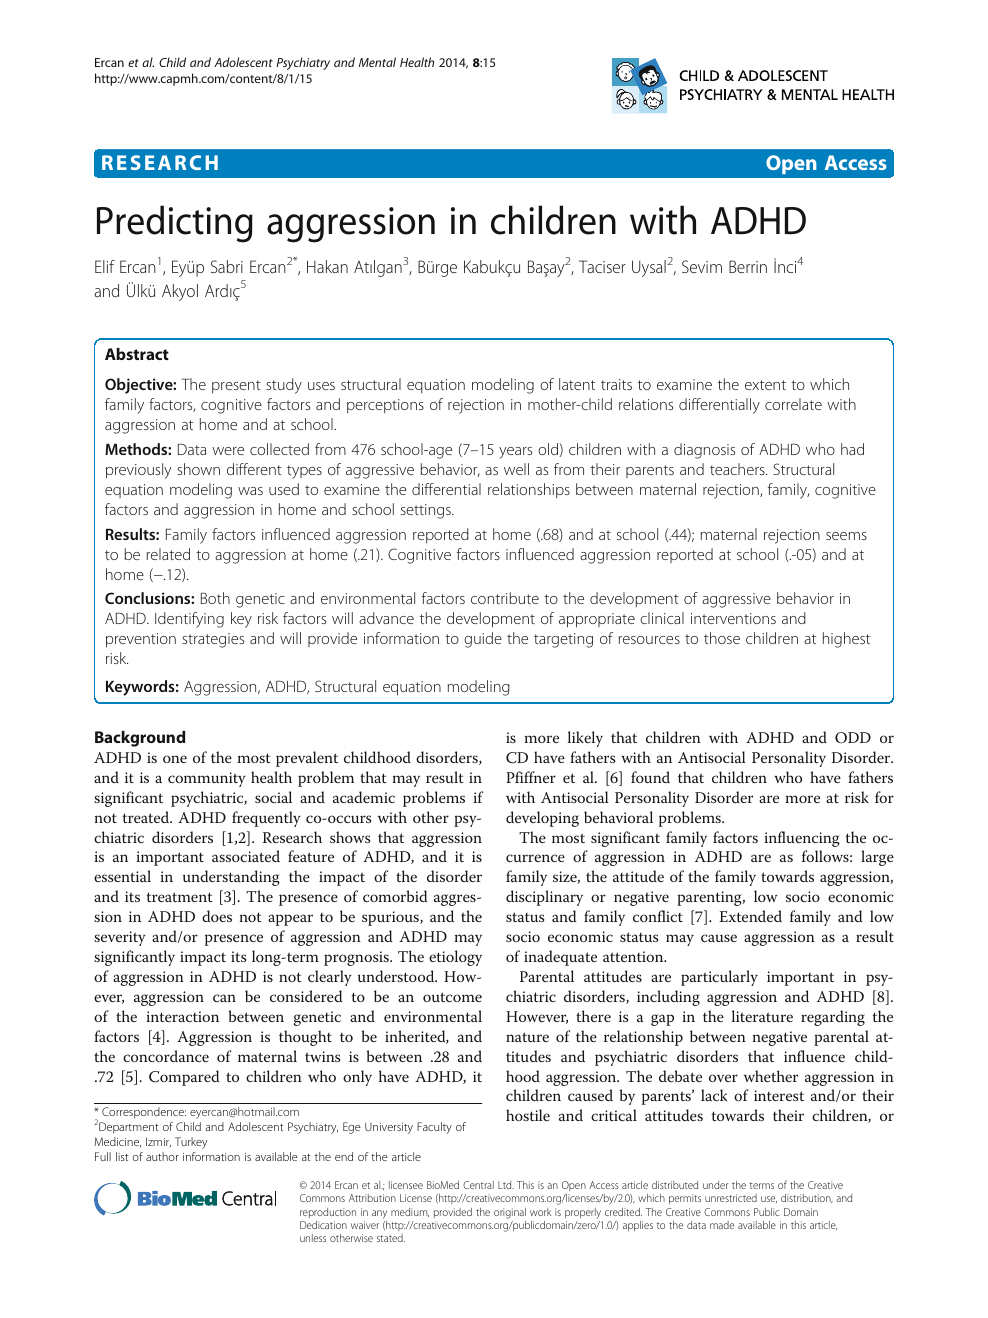 003 Adhd Research Remarkable Paper Ideas Thesis Statement Full